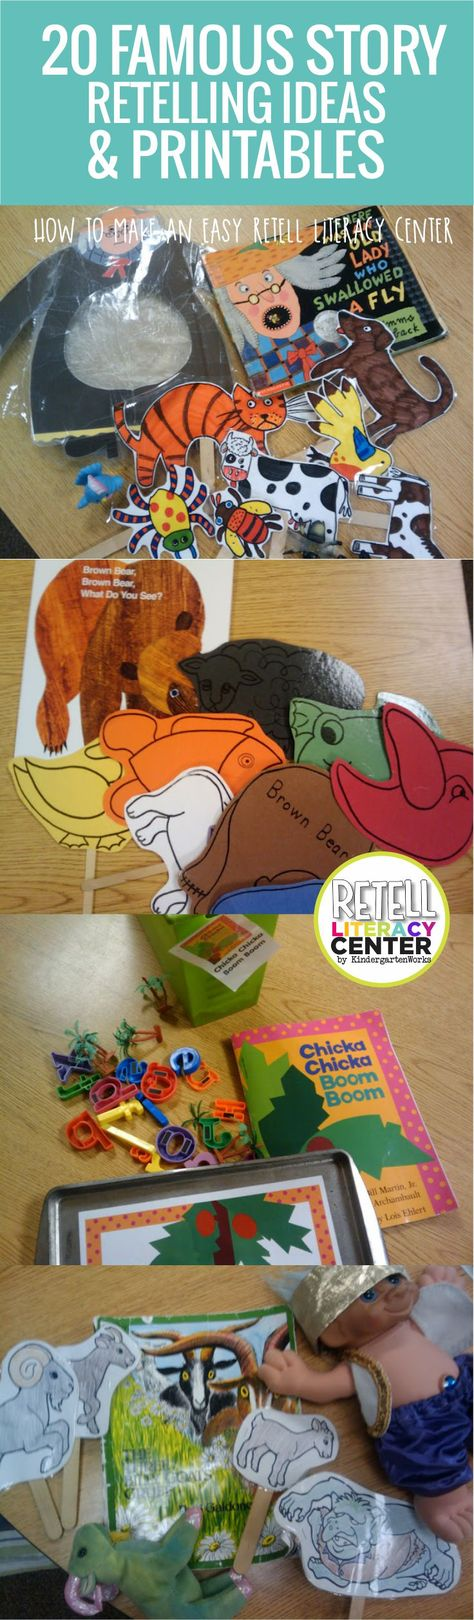 Retell Literacy Center: 20 Famous Story Retelling Ideas and Printables